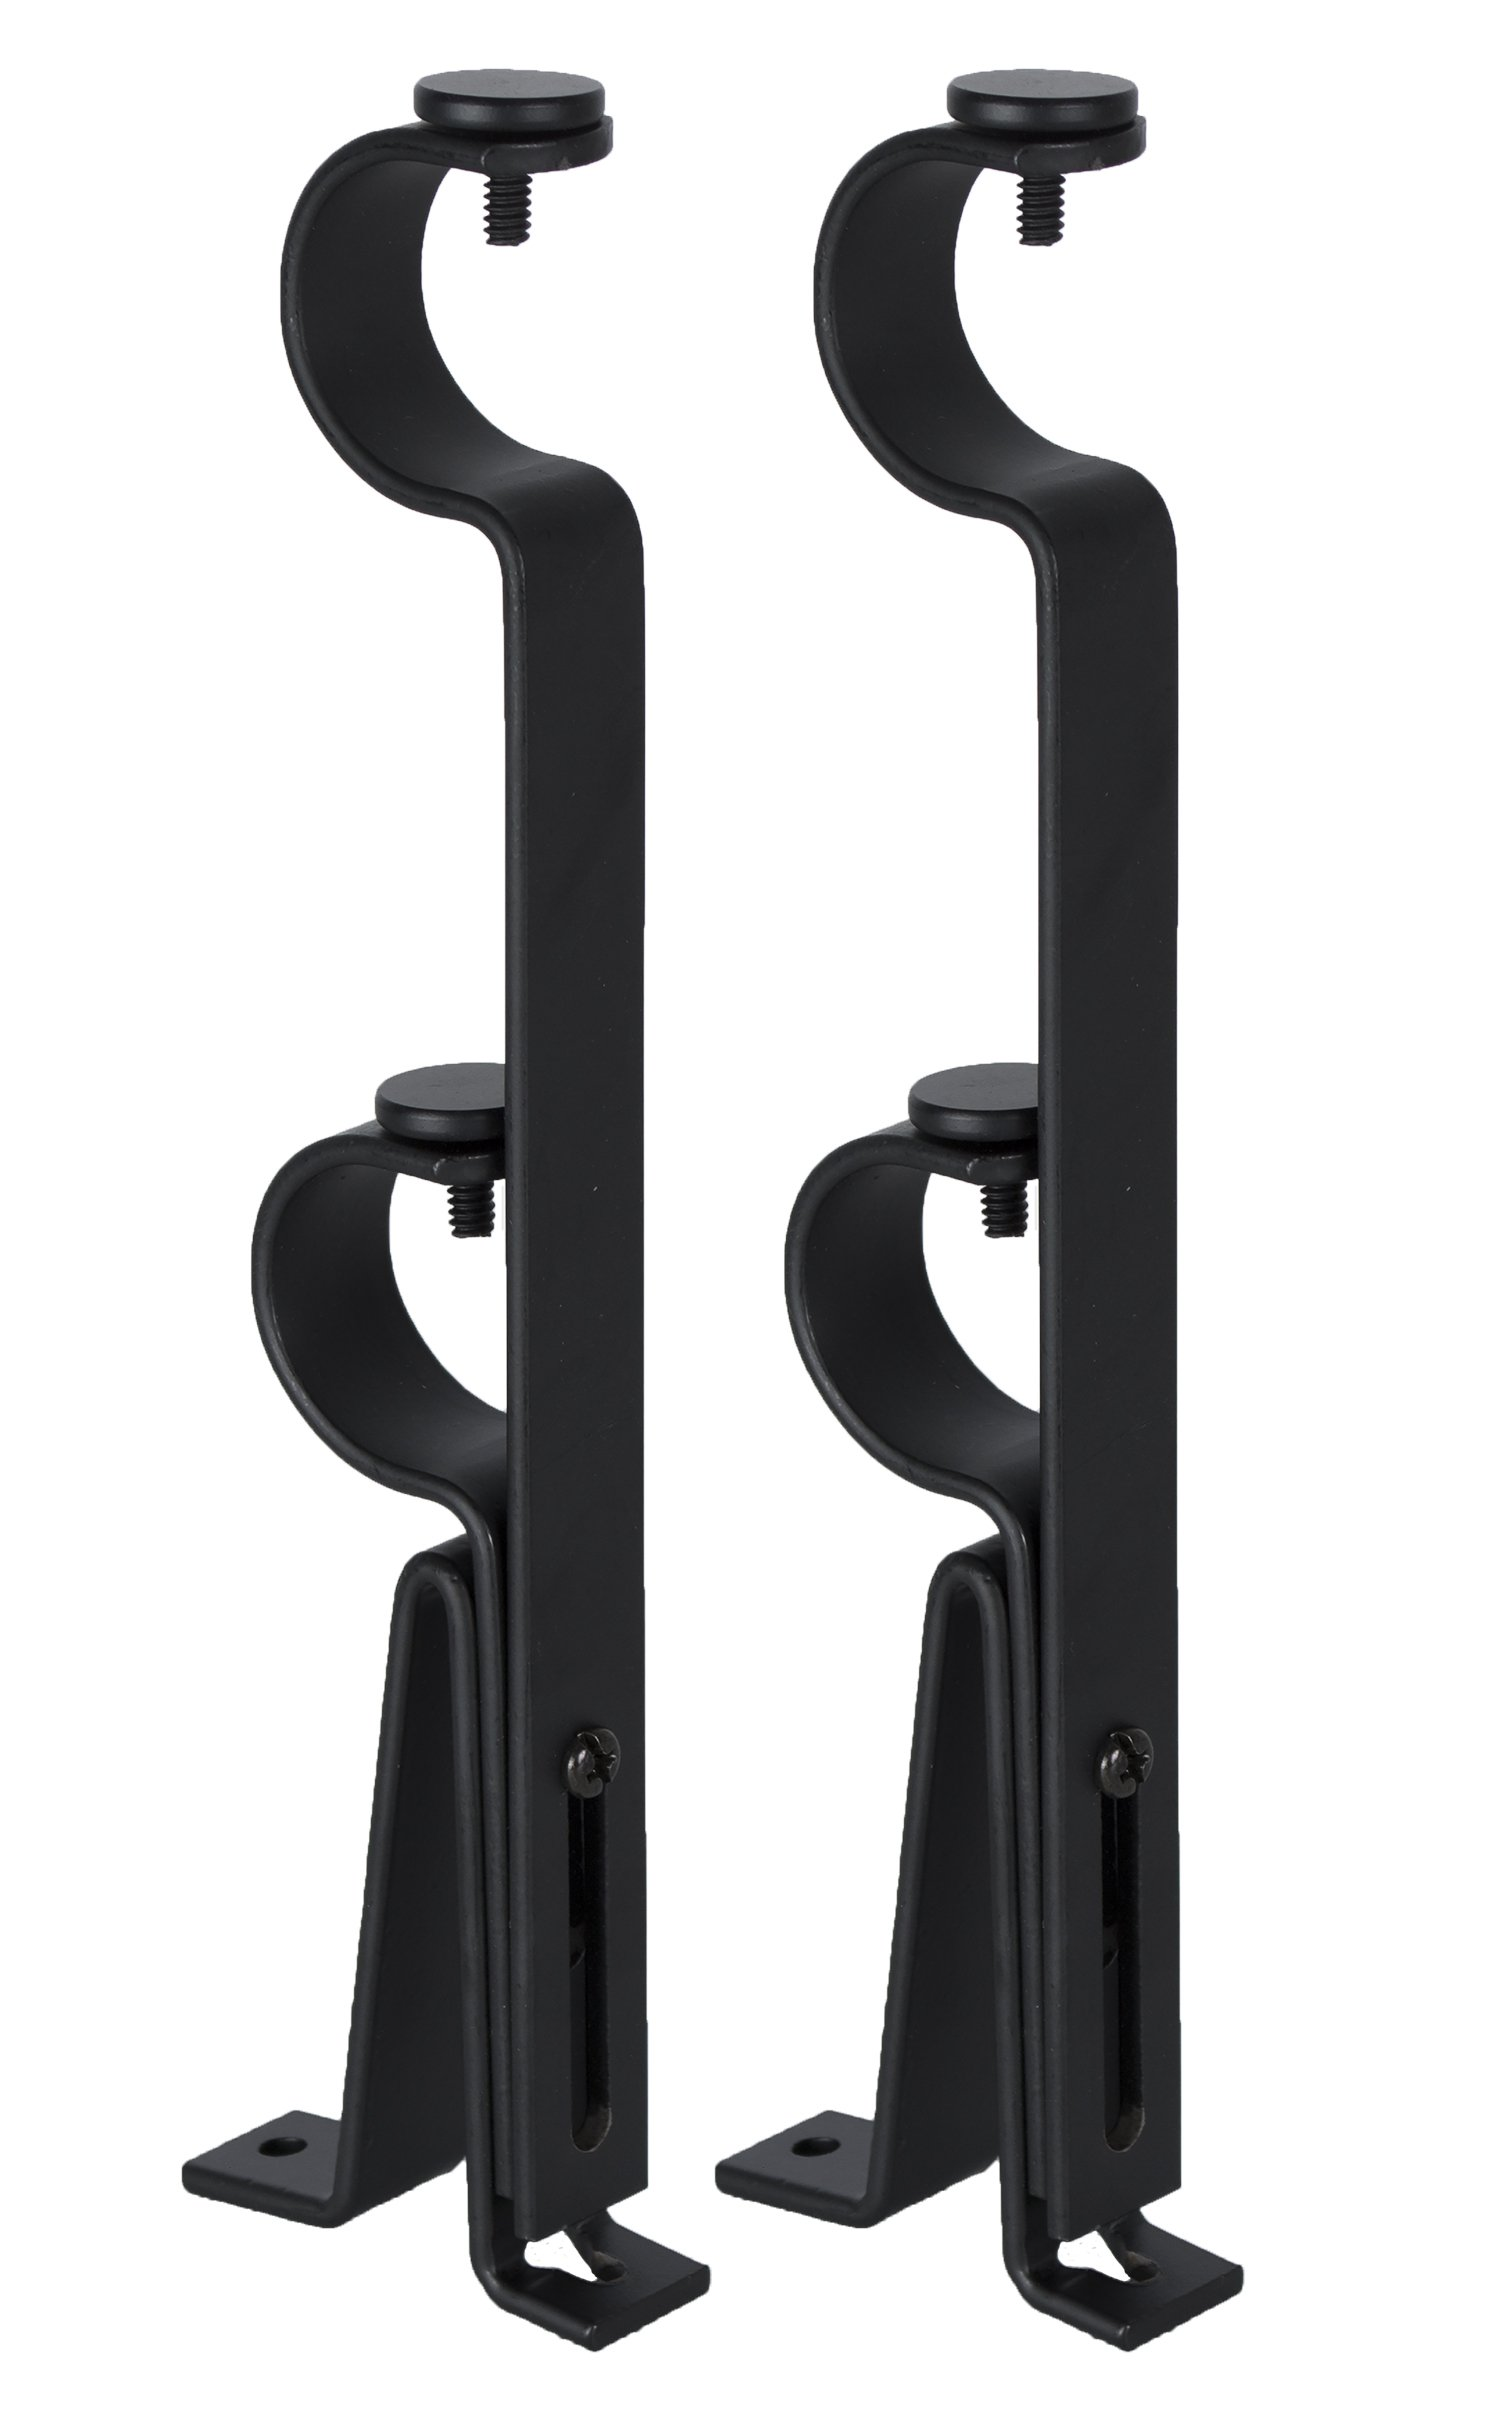 Urbanest Adjustable Double Curtain Rod Bracket, up to 1 1/8-inch Diameter Rods, 2 Pieces, Black